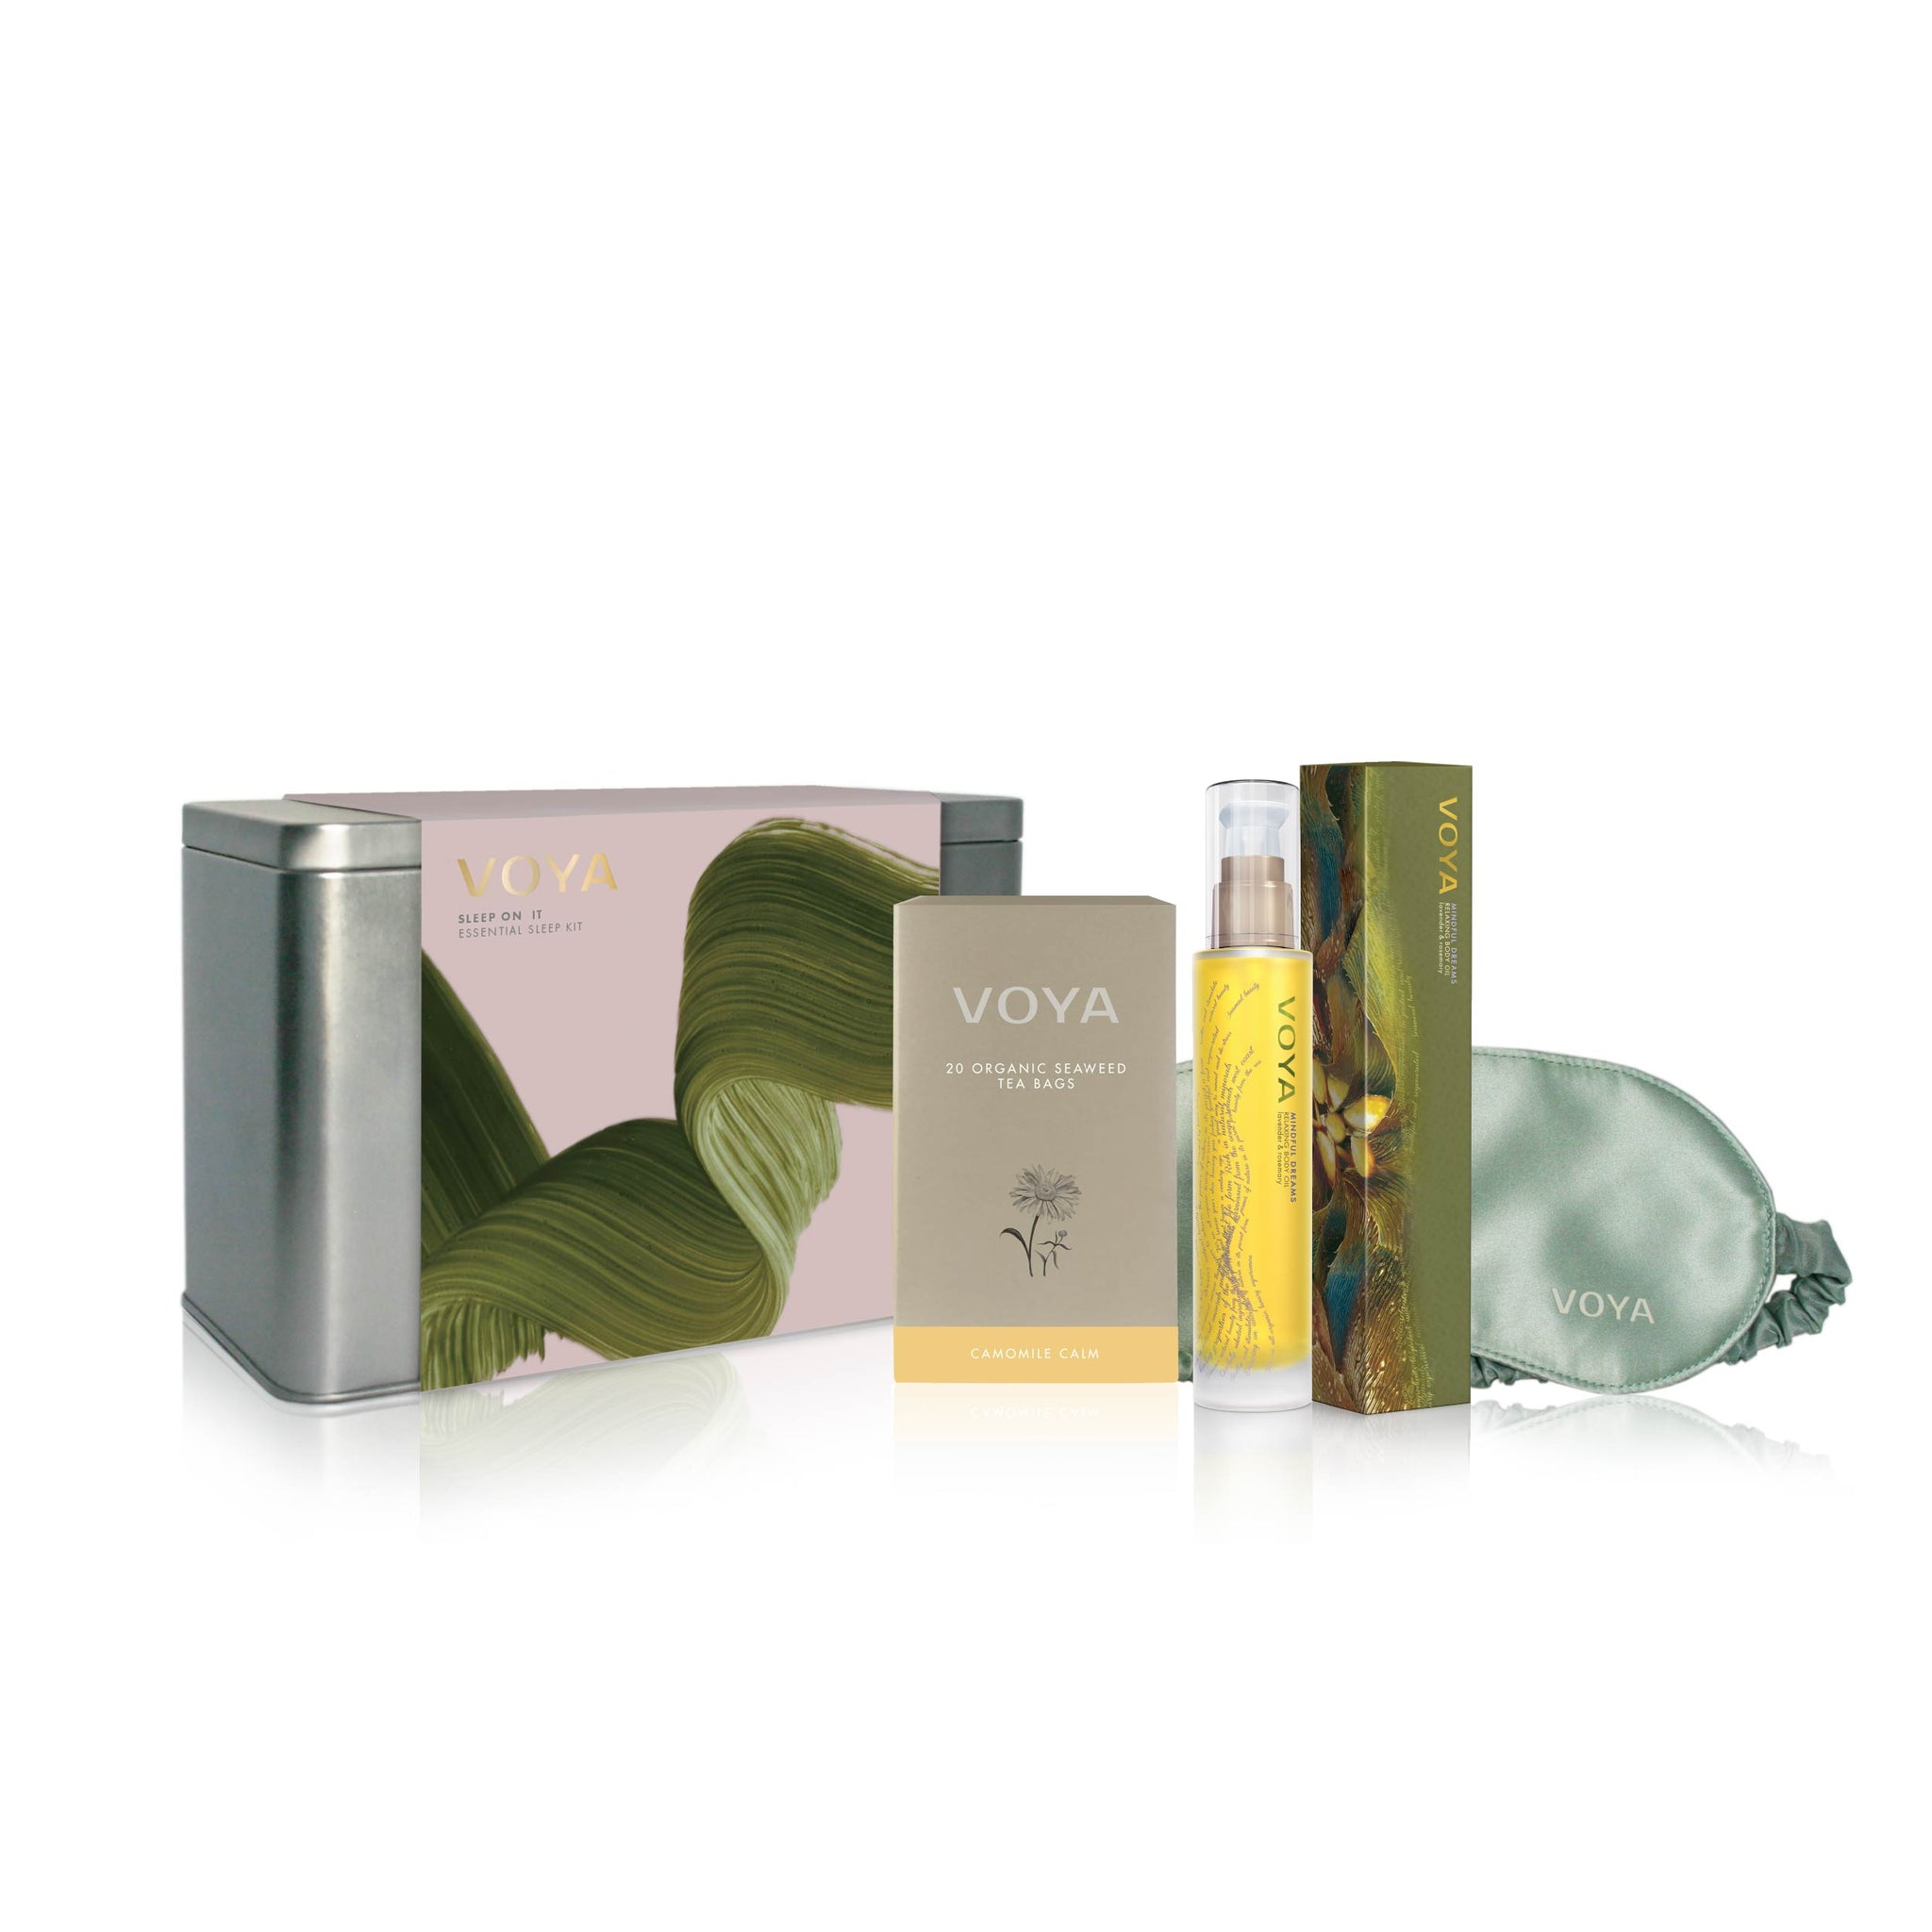 VOYA Sleep On It Gift Set